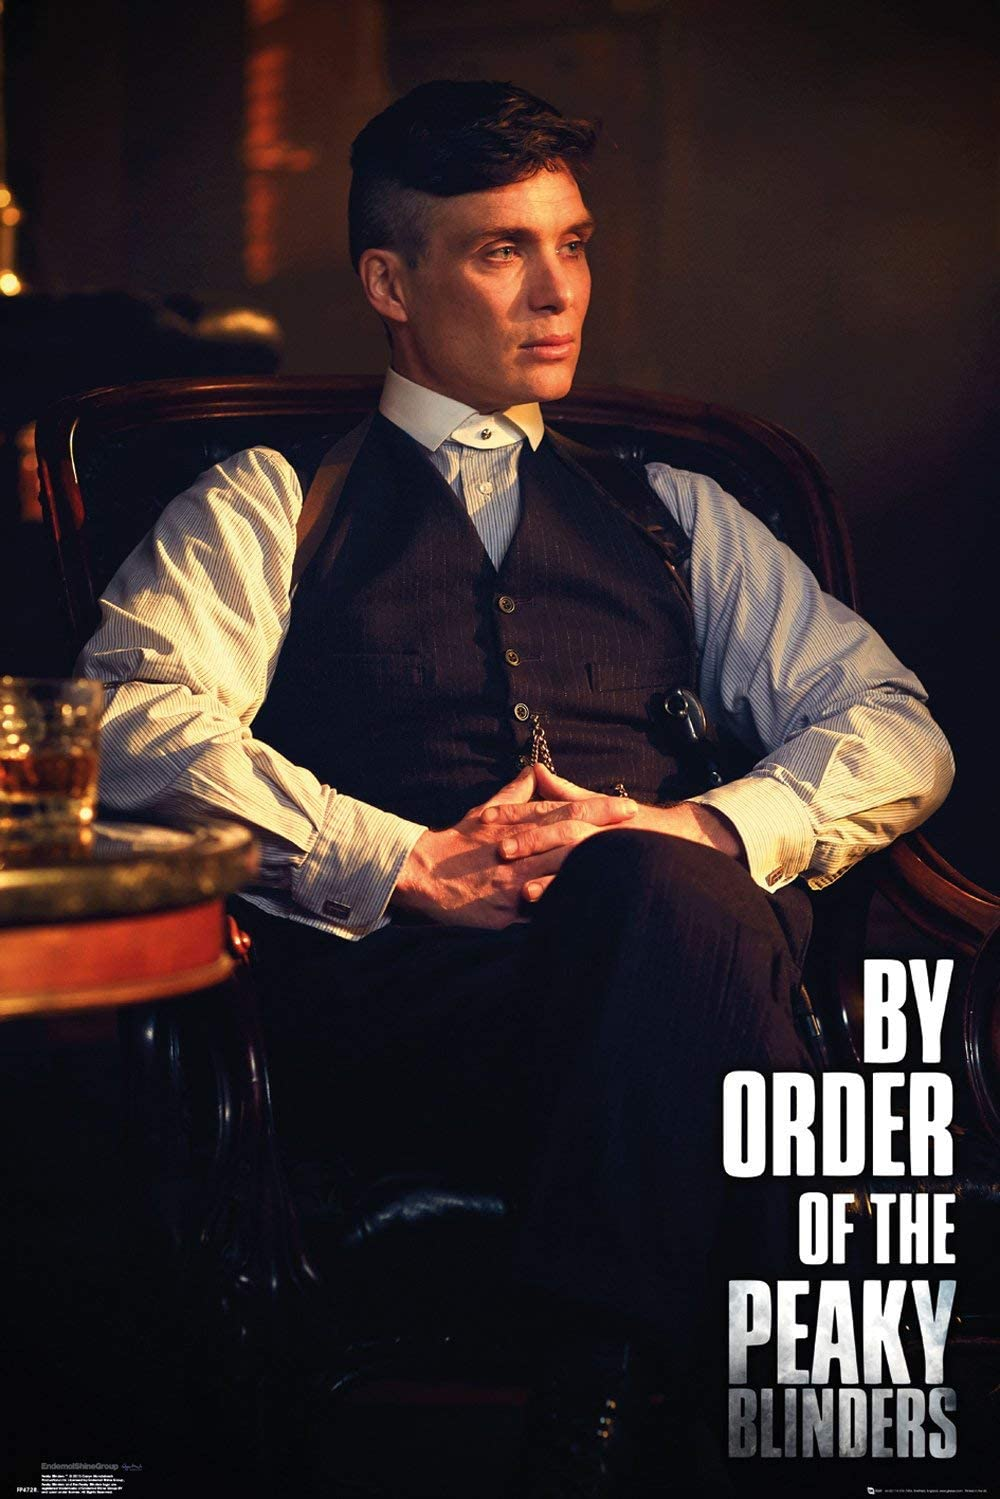 Peaky Blinders Poster Thomas Shelby Wall Decor Wall Print Wallpaper Tommy Shelby Home Decor